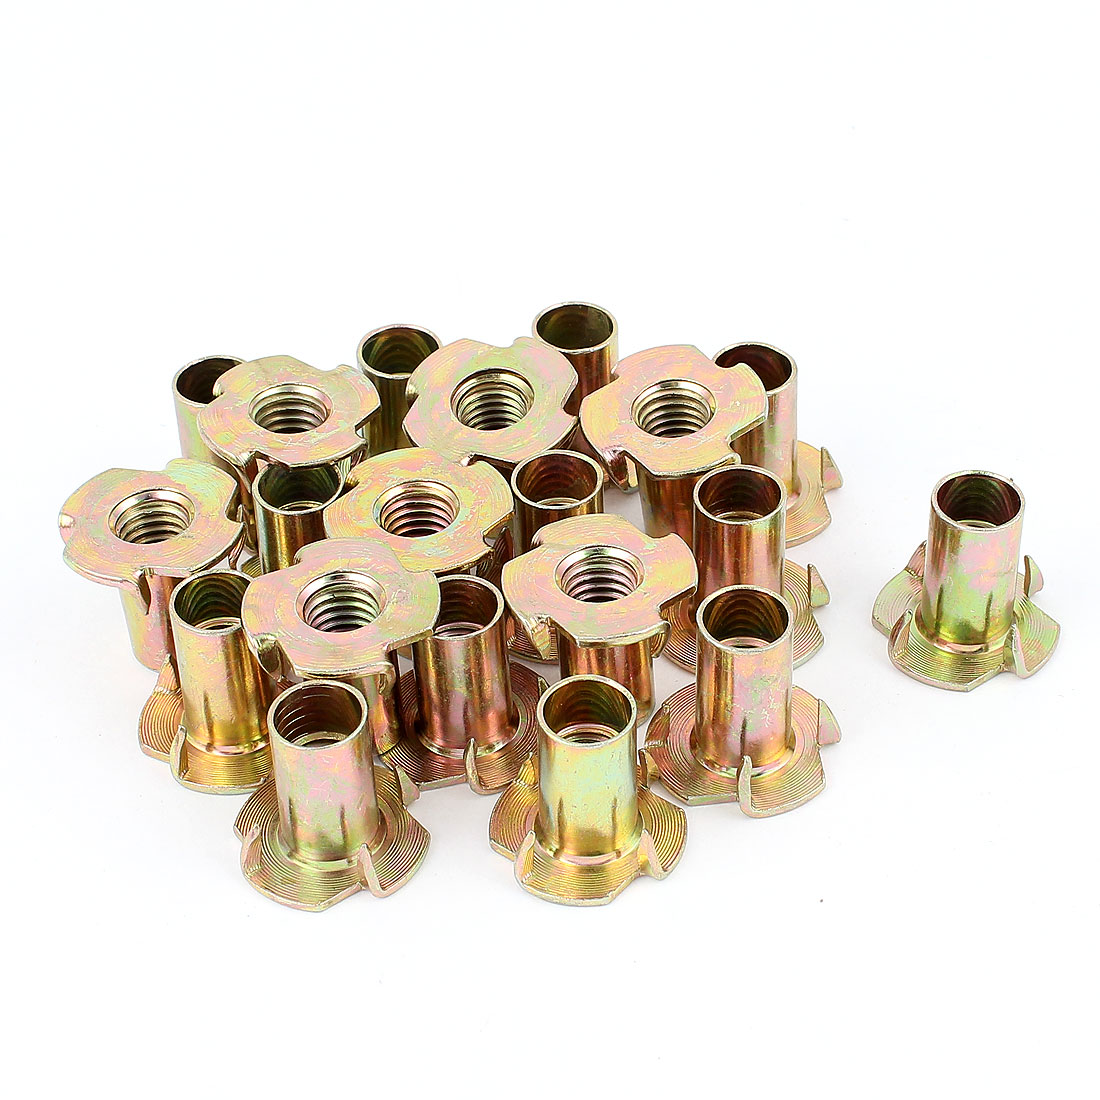 20Pcs 4 Prongs Zinc Plated T-Nut Tee Nut for 10mm Diameter Screw